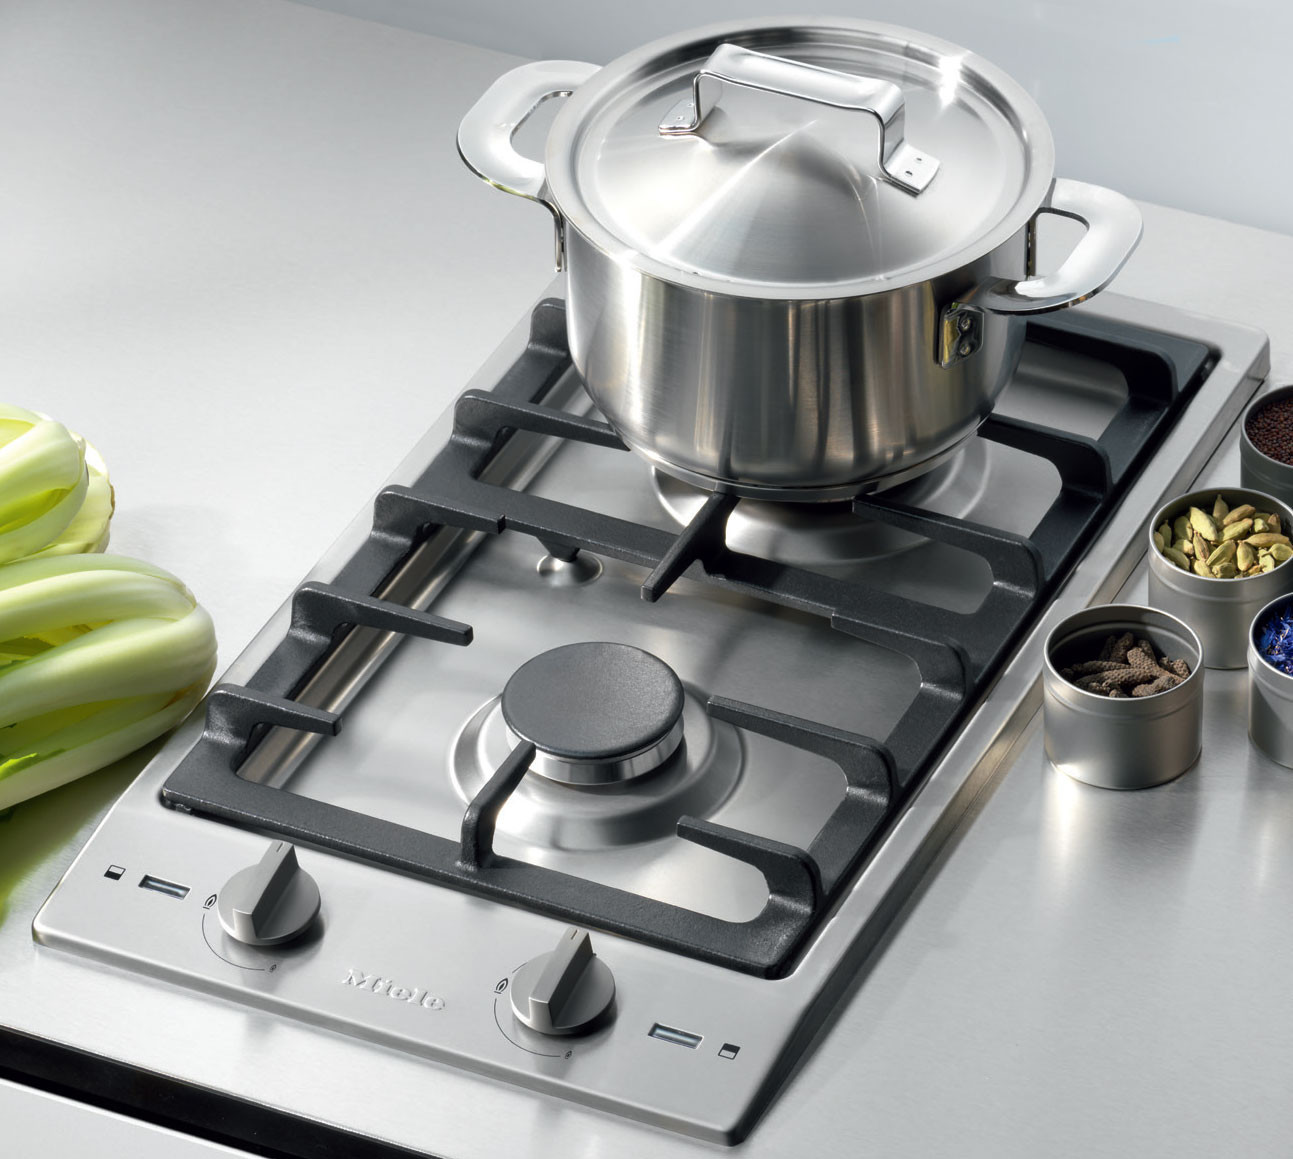 Miele Combiset Cs10121lp 12 Inch Gas Cooktop